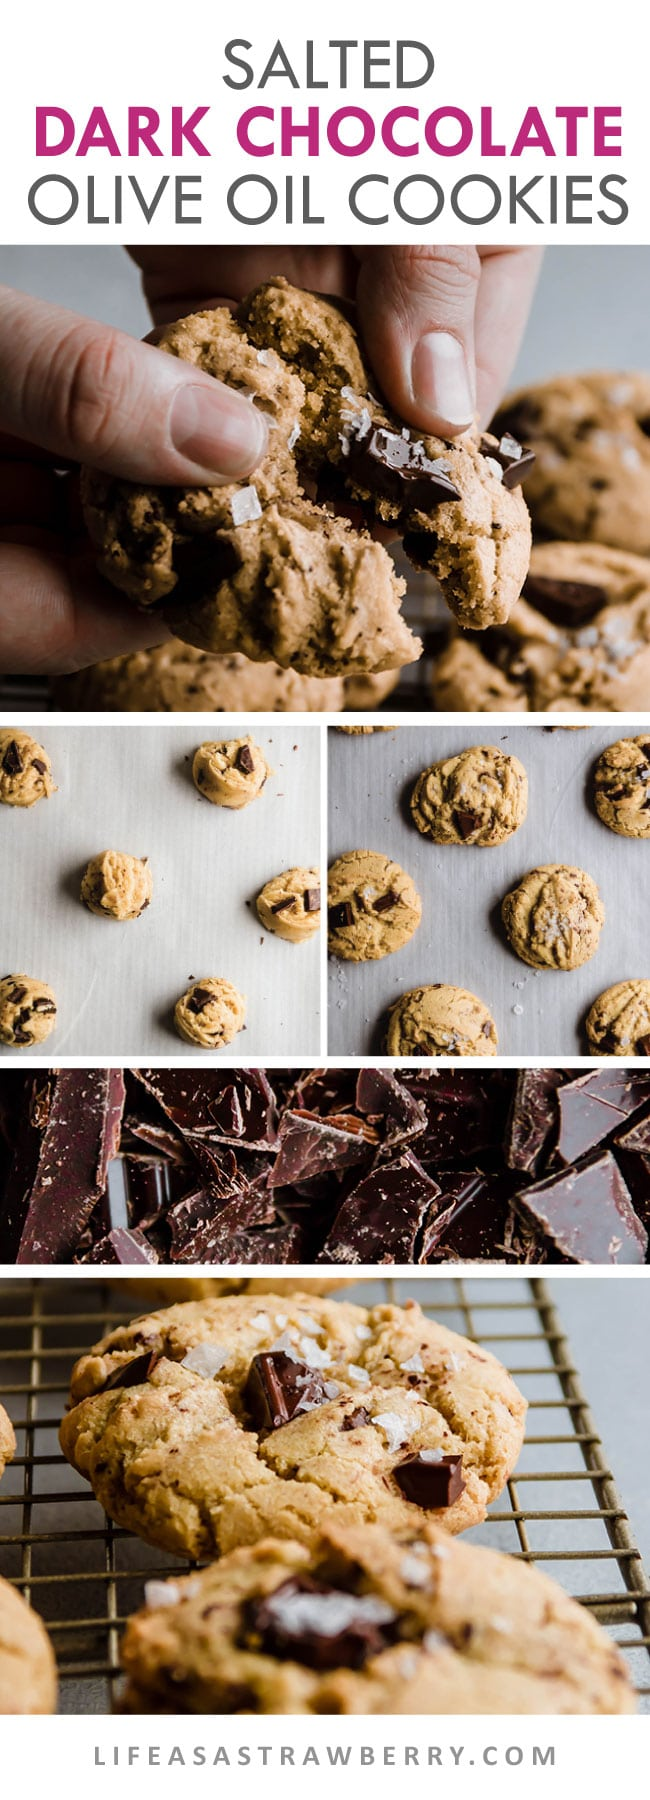 Graphic illustrating how to make chocolate chunk cookies